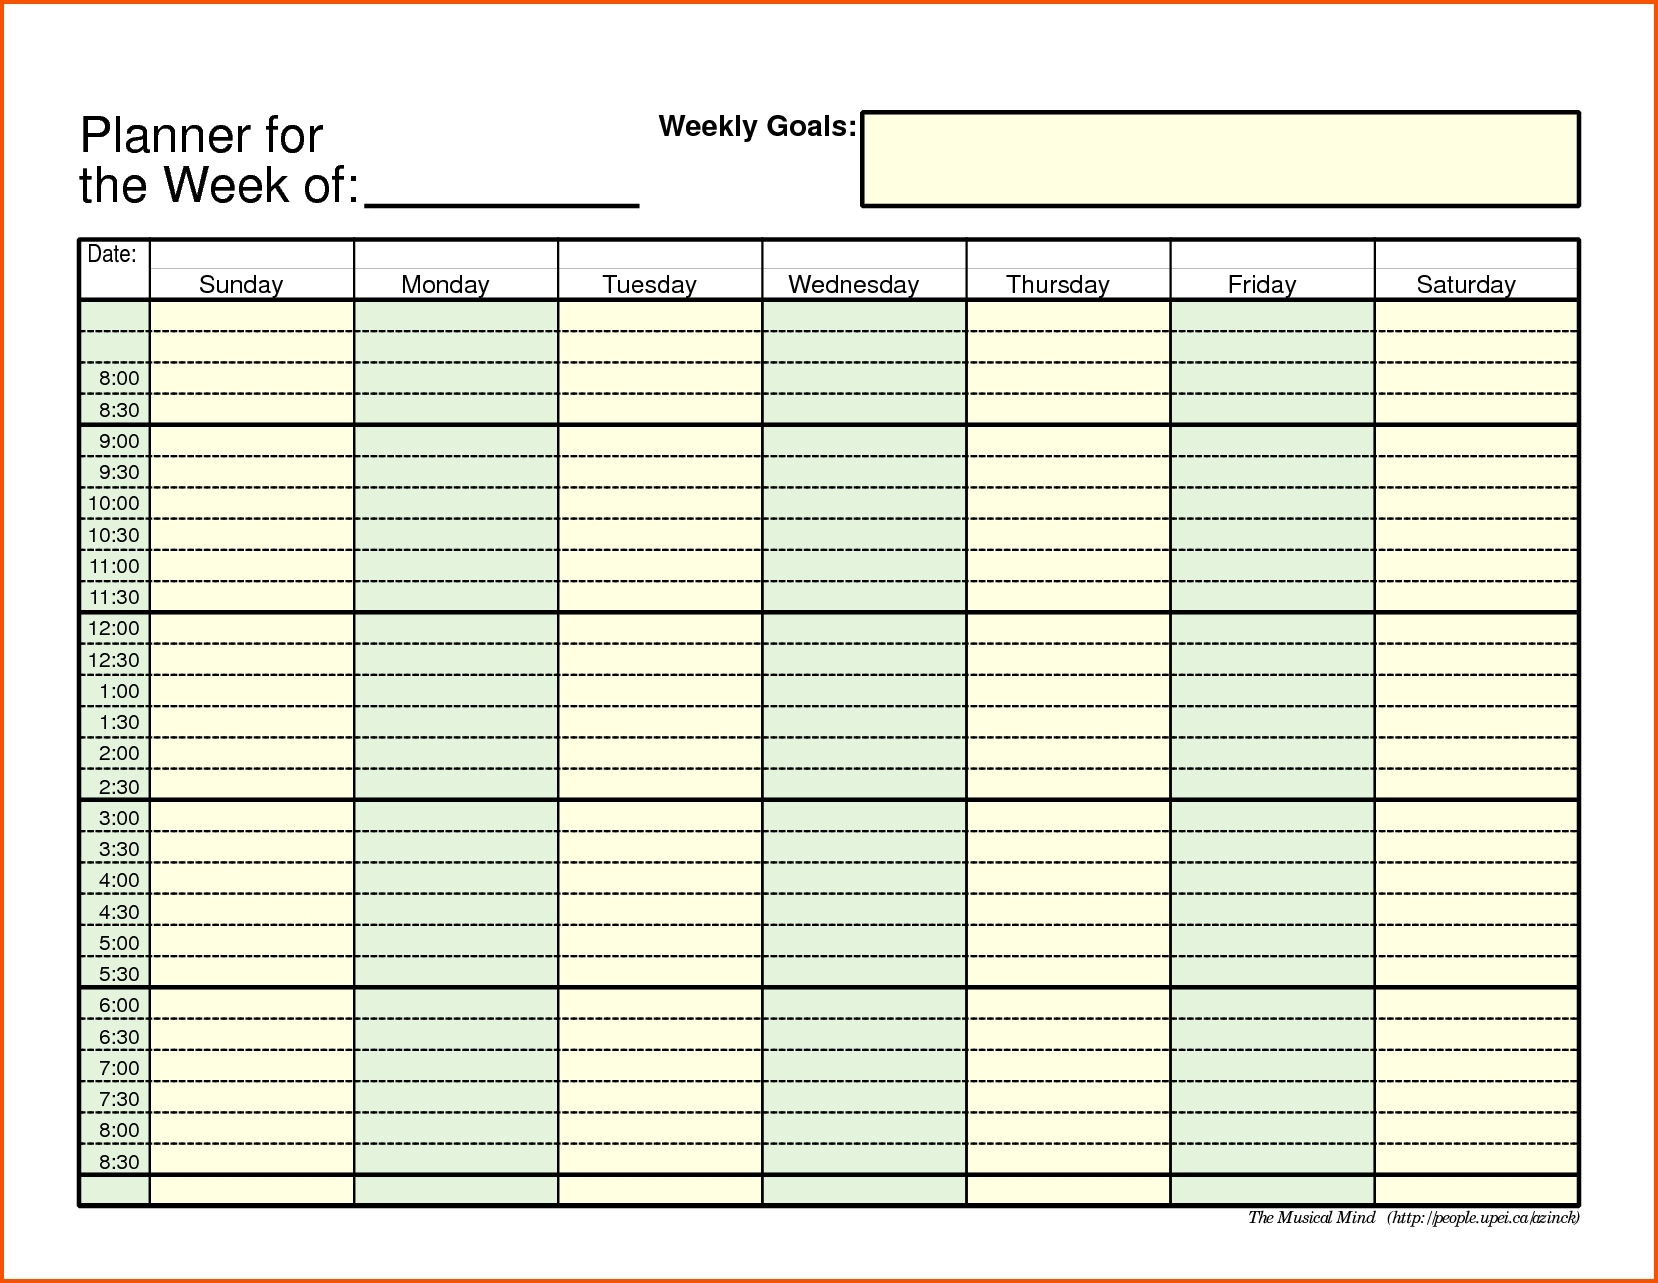 Weekly Schedule Template Ideas Calendar With Time Slots Free Smorad regarding Weekly Schedule With Time Slots